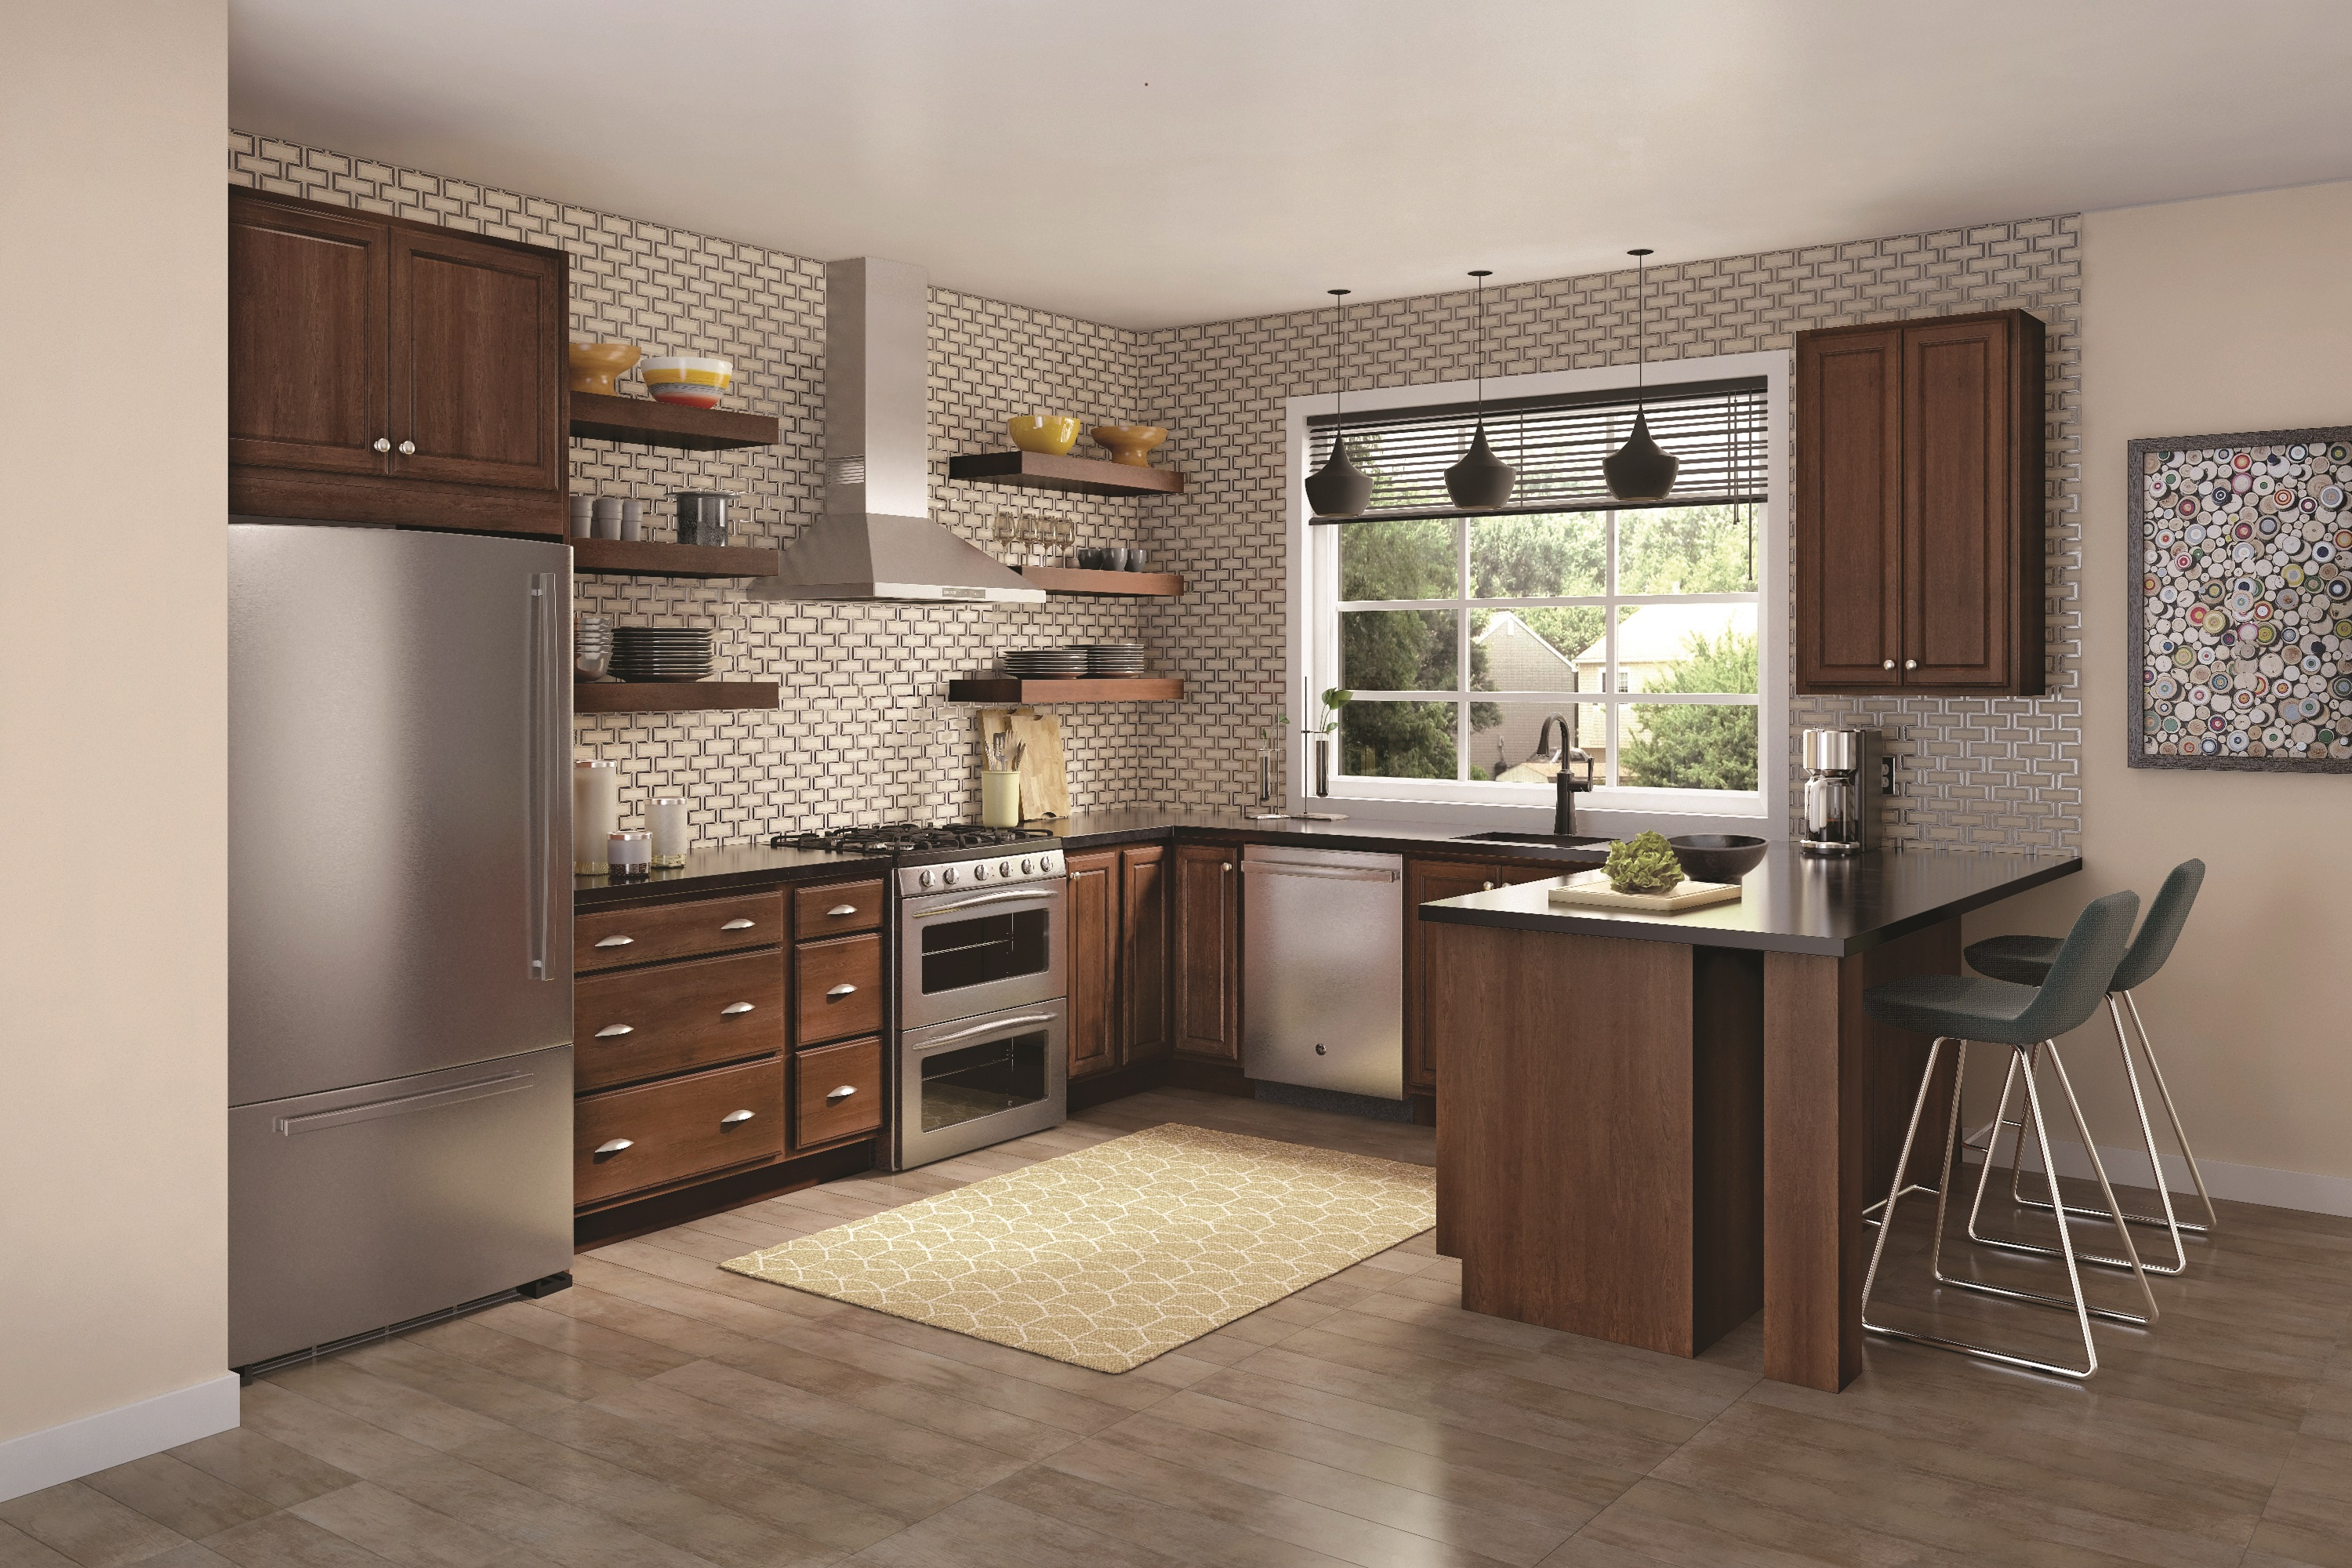 merillat classic seneca ridge in maple pecan - Merillat Classic Kitchen Cabinets